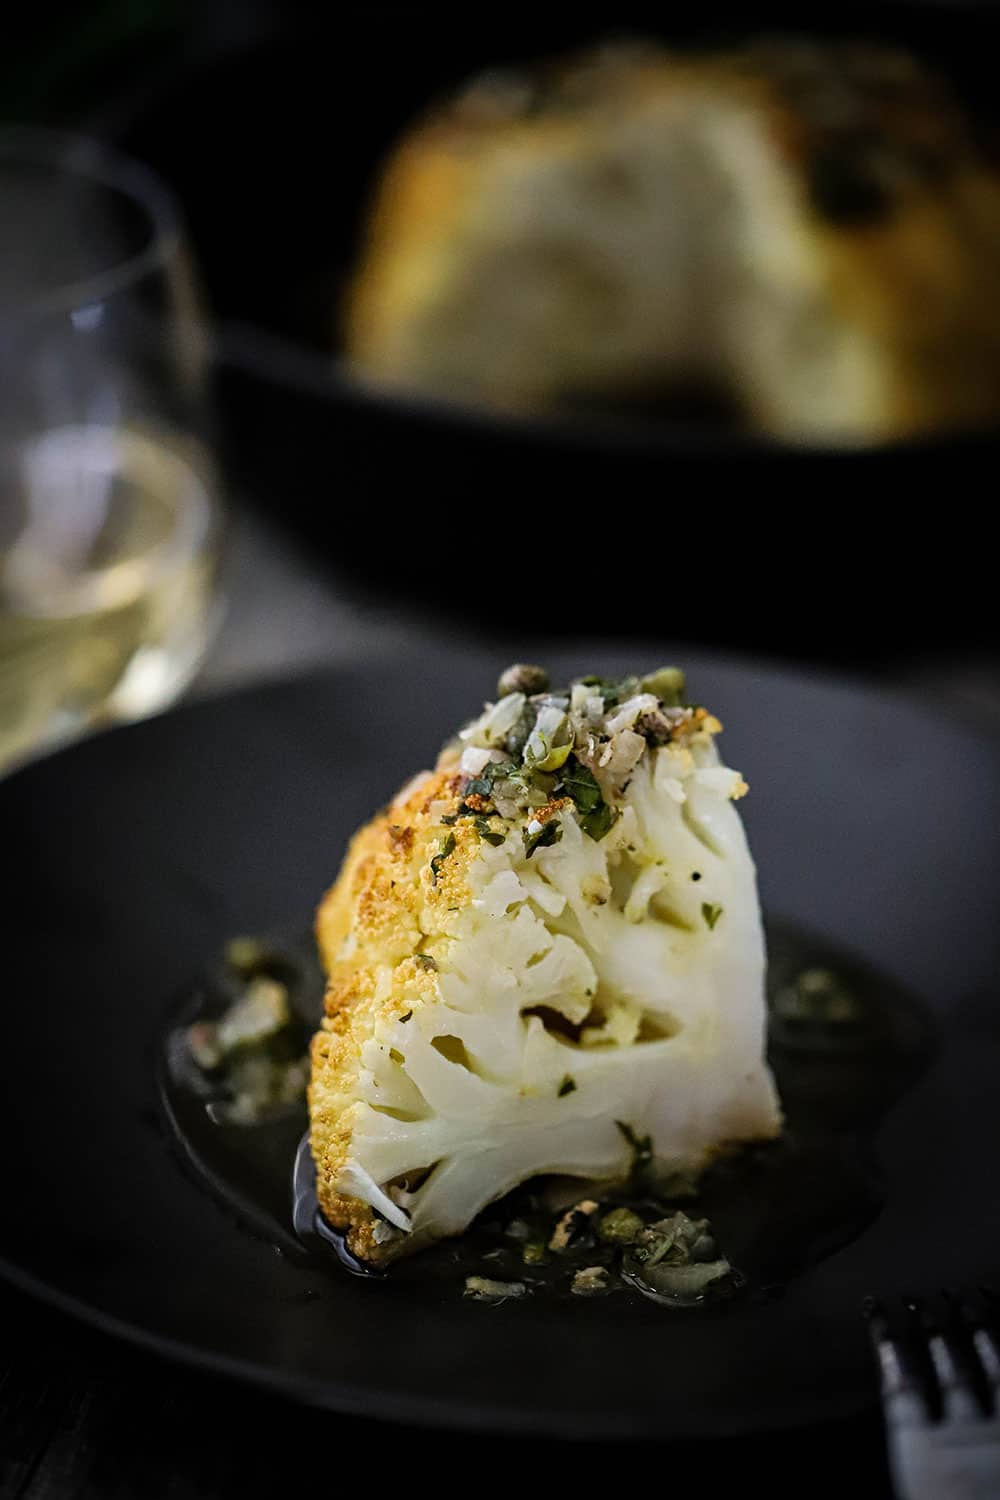 A slice of roasted whole cauliflower sitting on a black plate and topped with a wine butter herb sauce.